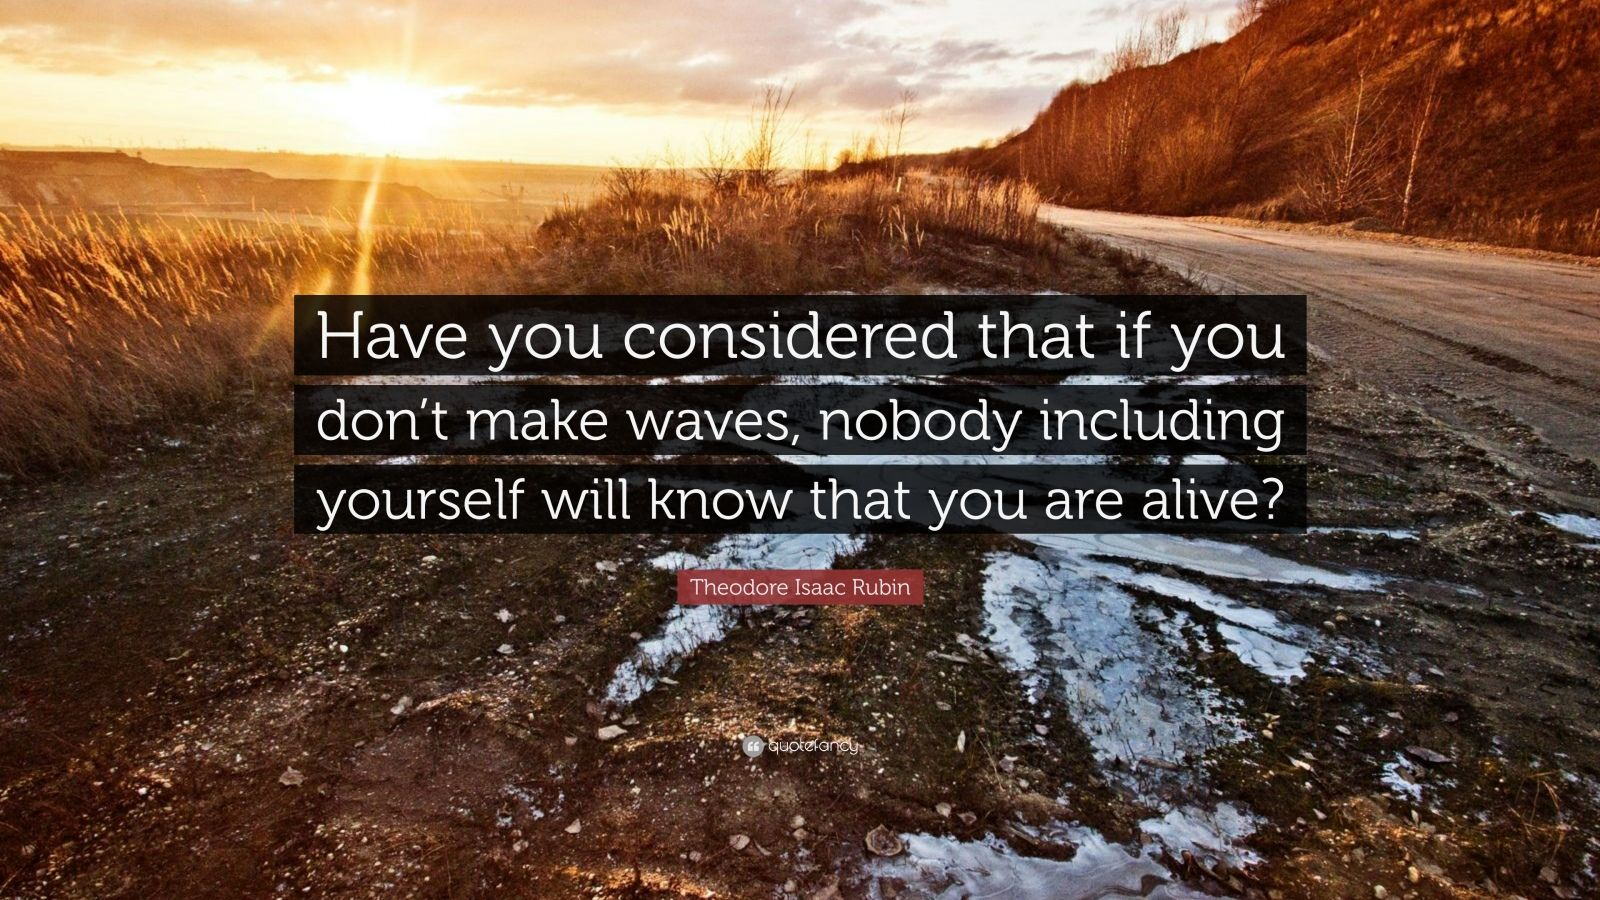 """Theodore Isaac Rubin Quote: """"Have you considered that if you don't make waves, nobody including yourself will know that you are alive?"""""""